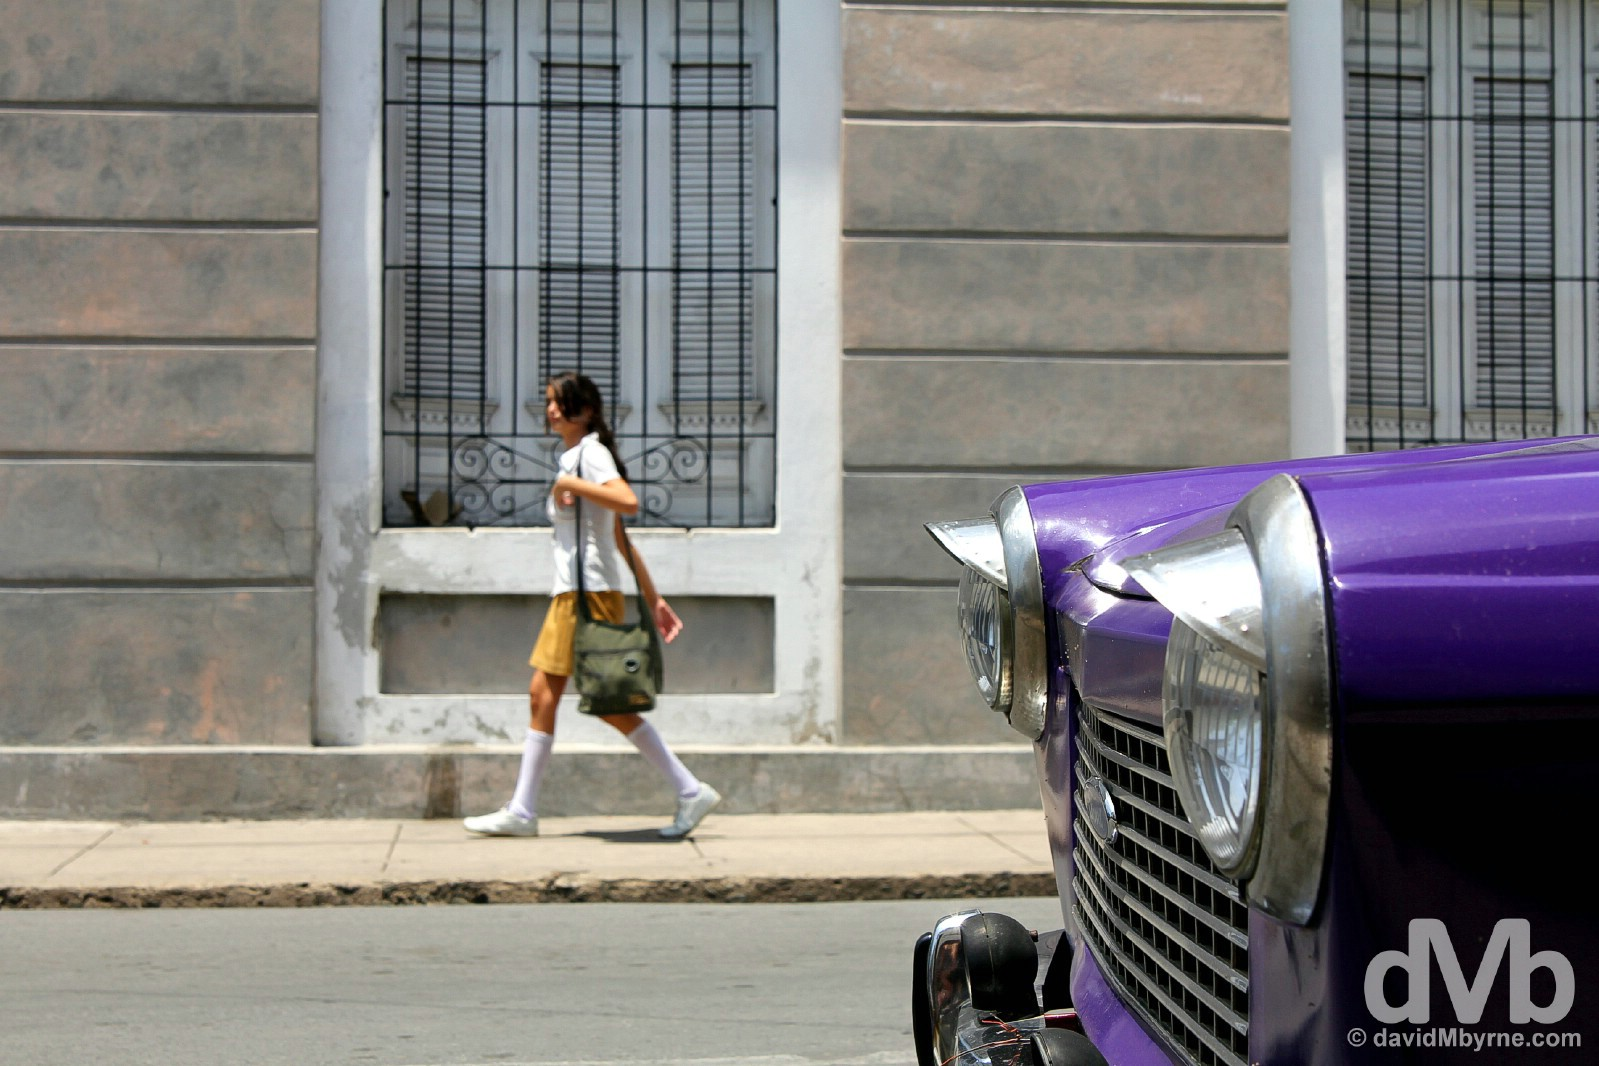 On the streets of Cienfuegos Cuba. May 8, 2015.